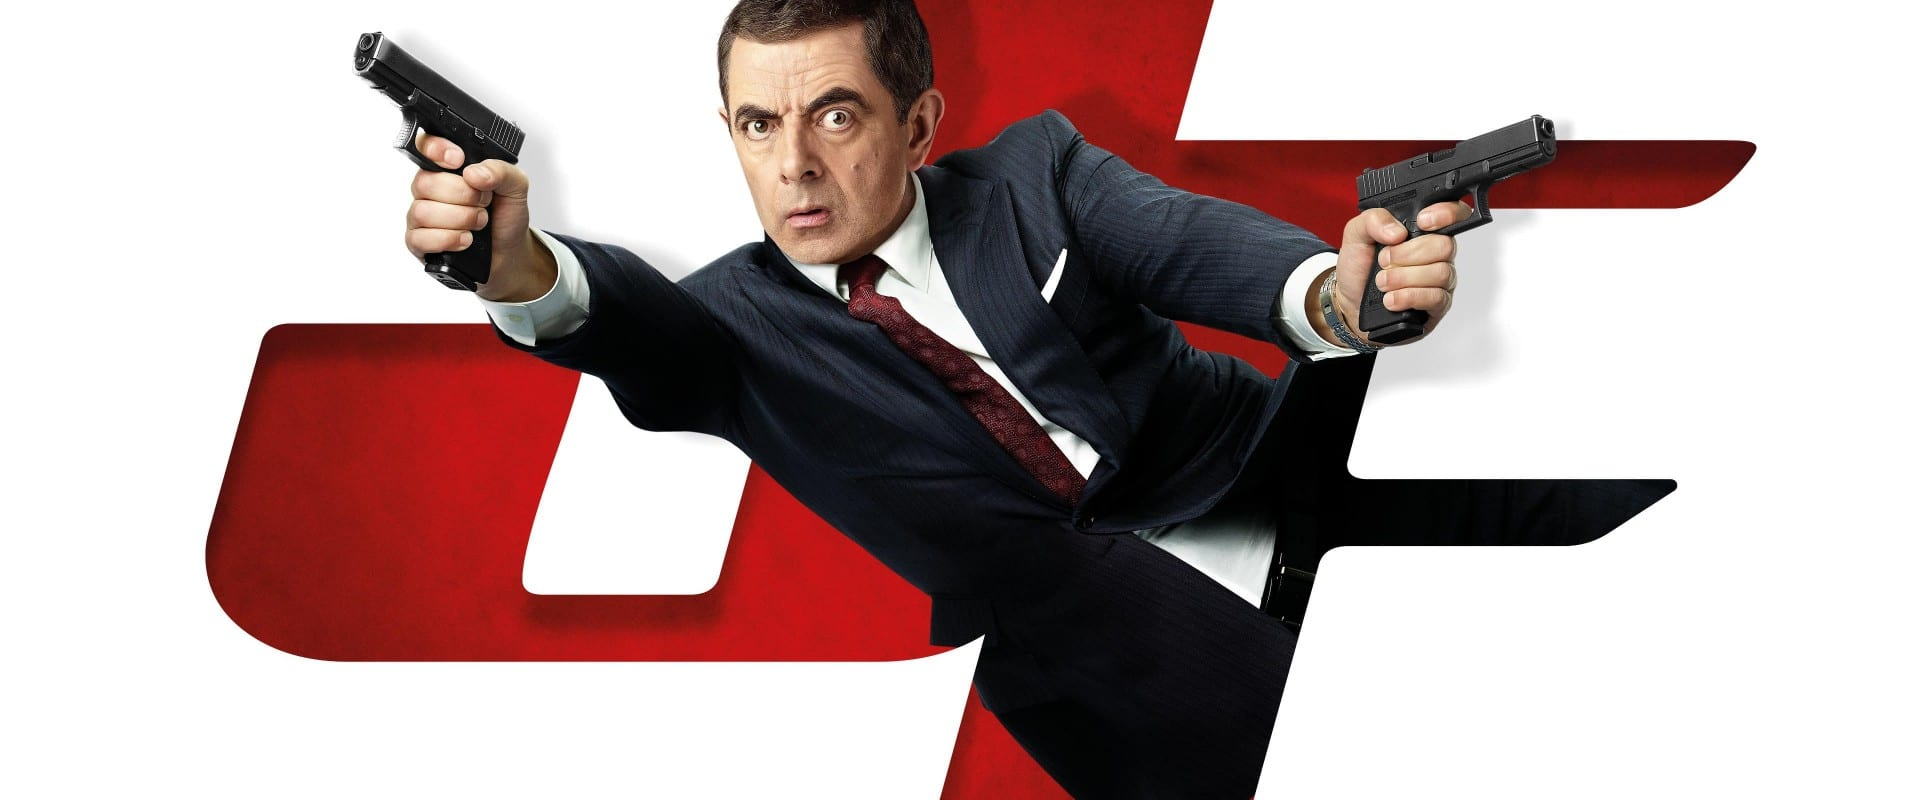 johnny-english-strikes-again-20180920031134-tmdb4f41qbtp Johnny English Strikes Again